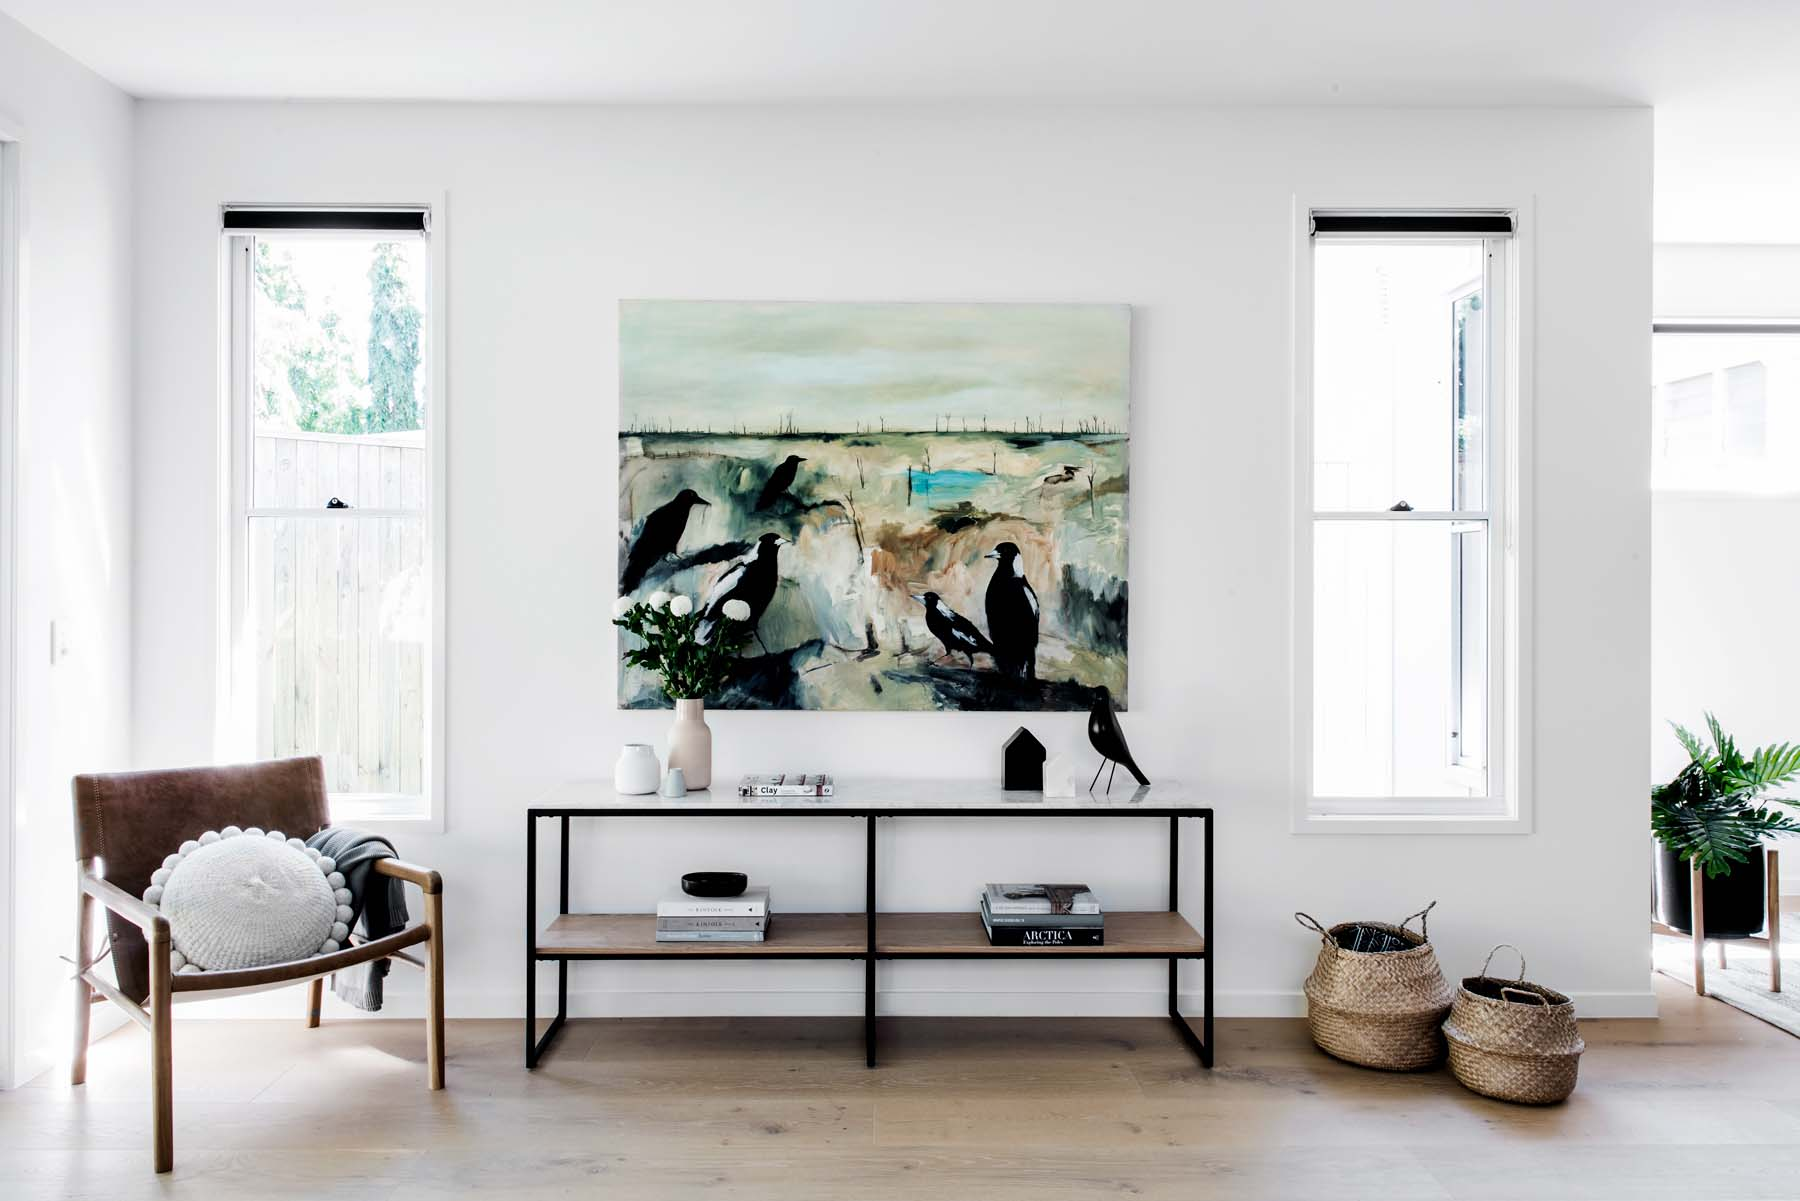 Kalka Display Home in Manly. Artwork by Robyn Kirk, photography by Cathy Schusler.